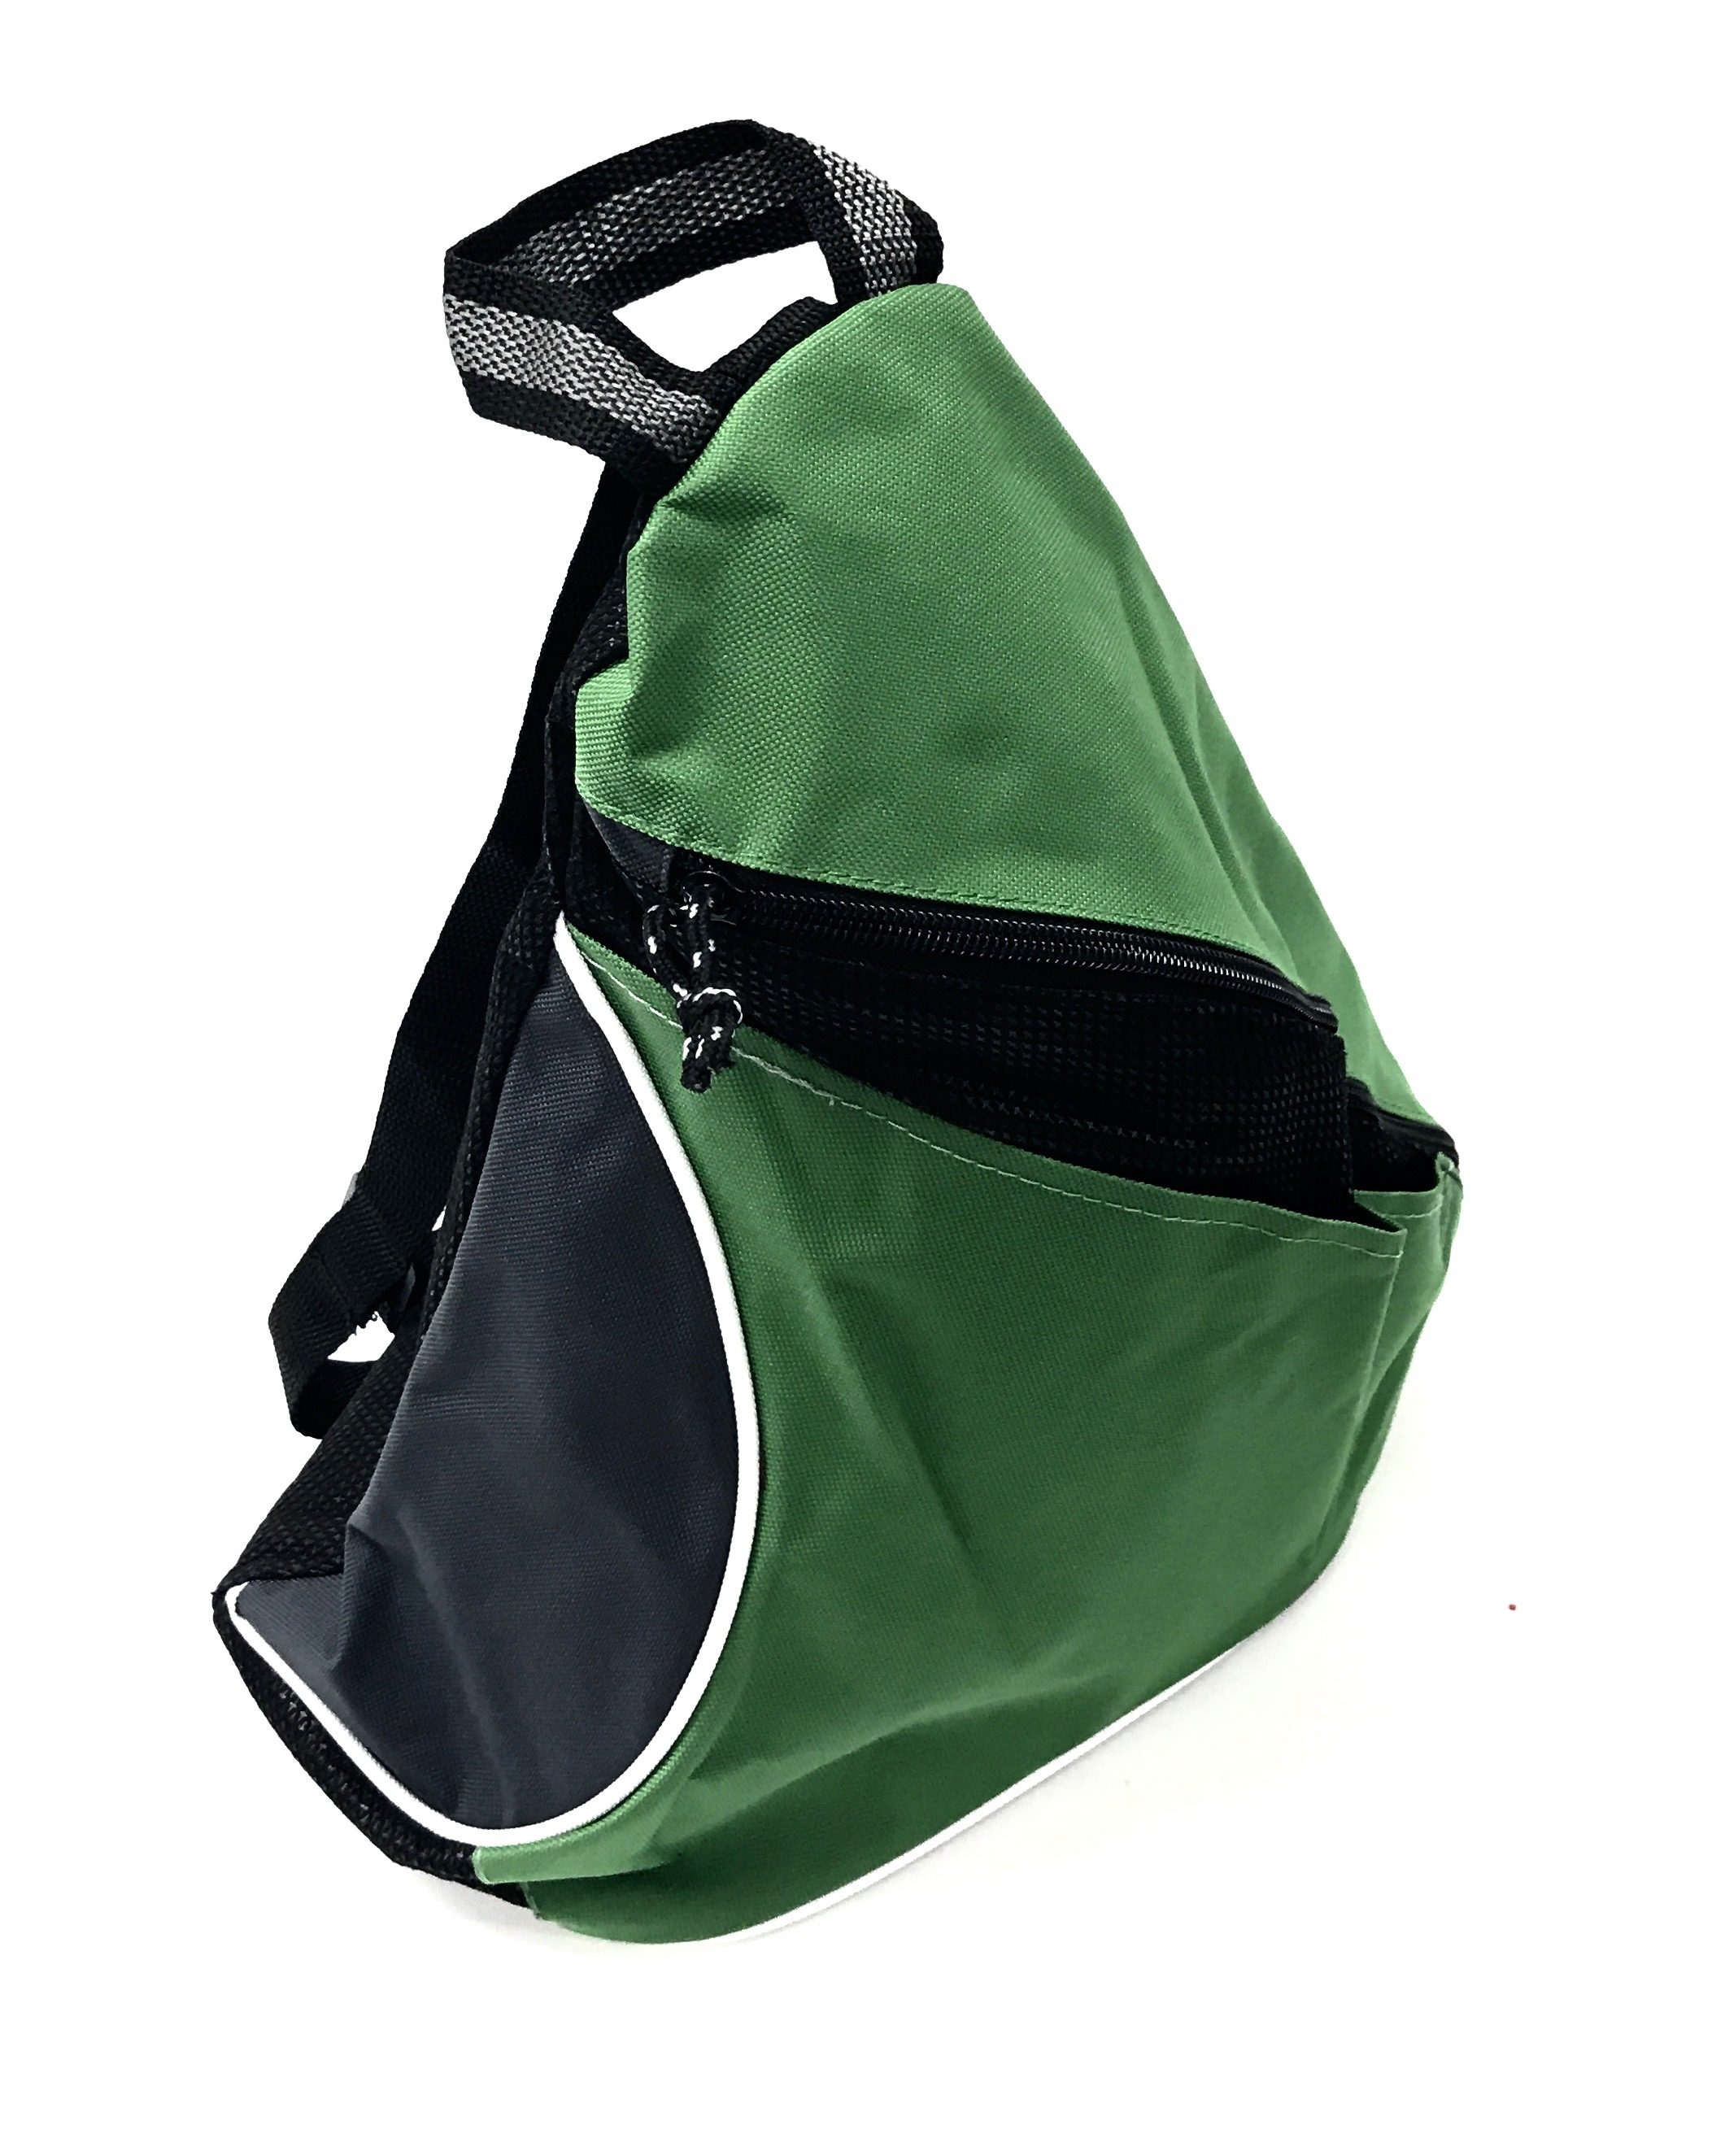 (123208) Color Splash Sling - Green